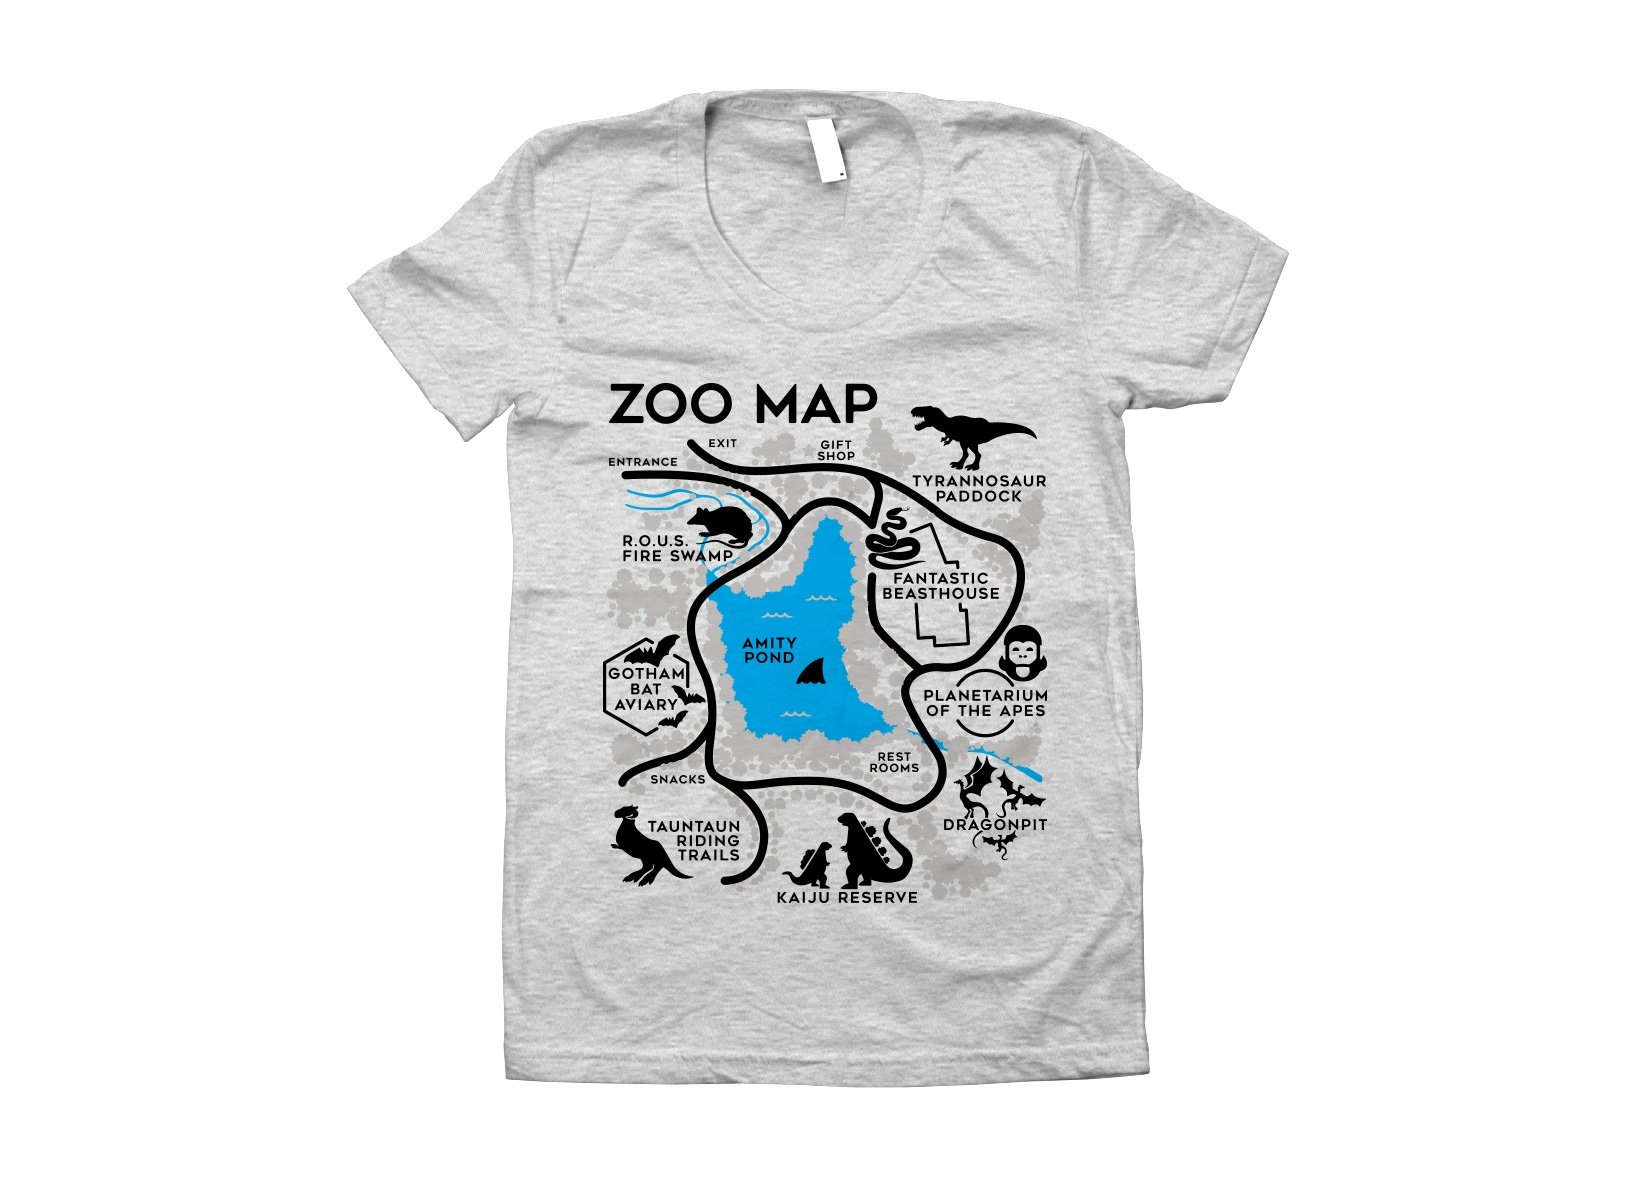 Zoo Map on Juniors T-Shirt